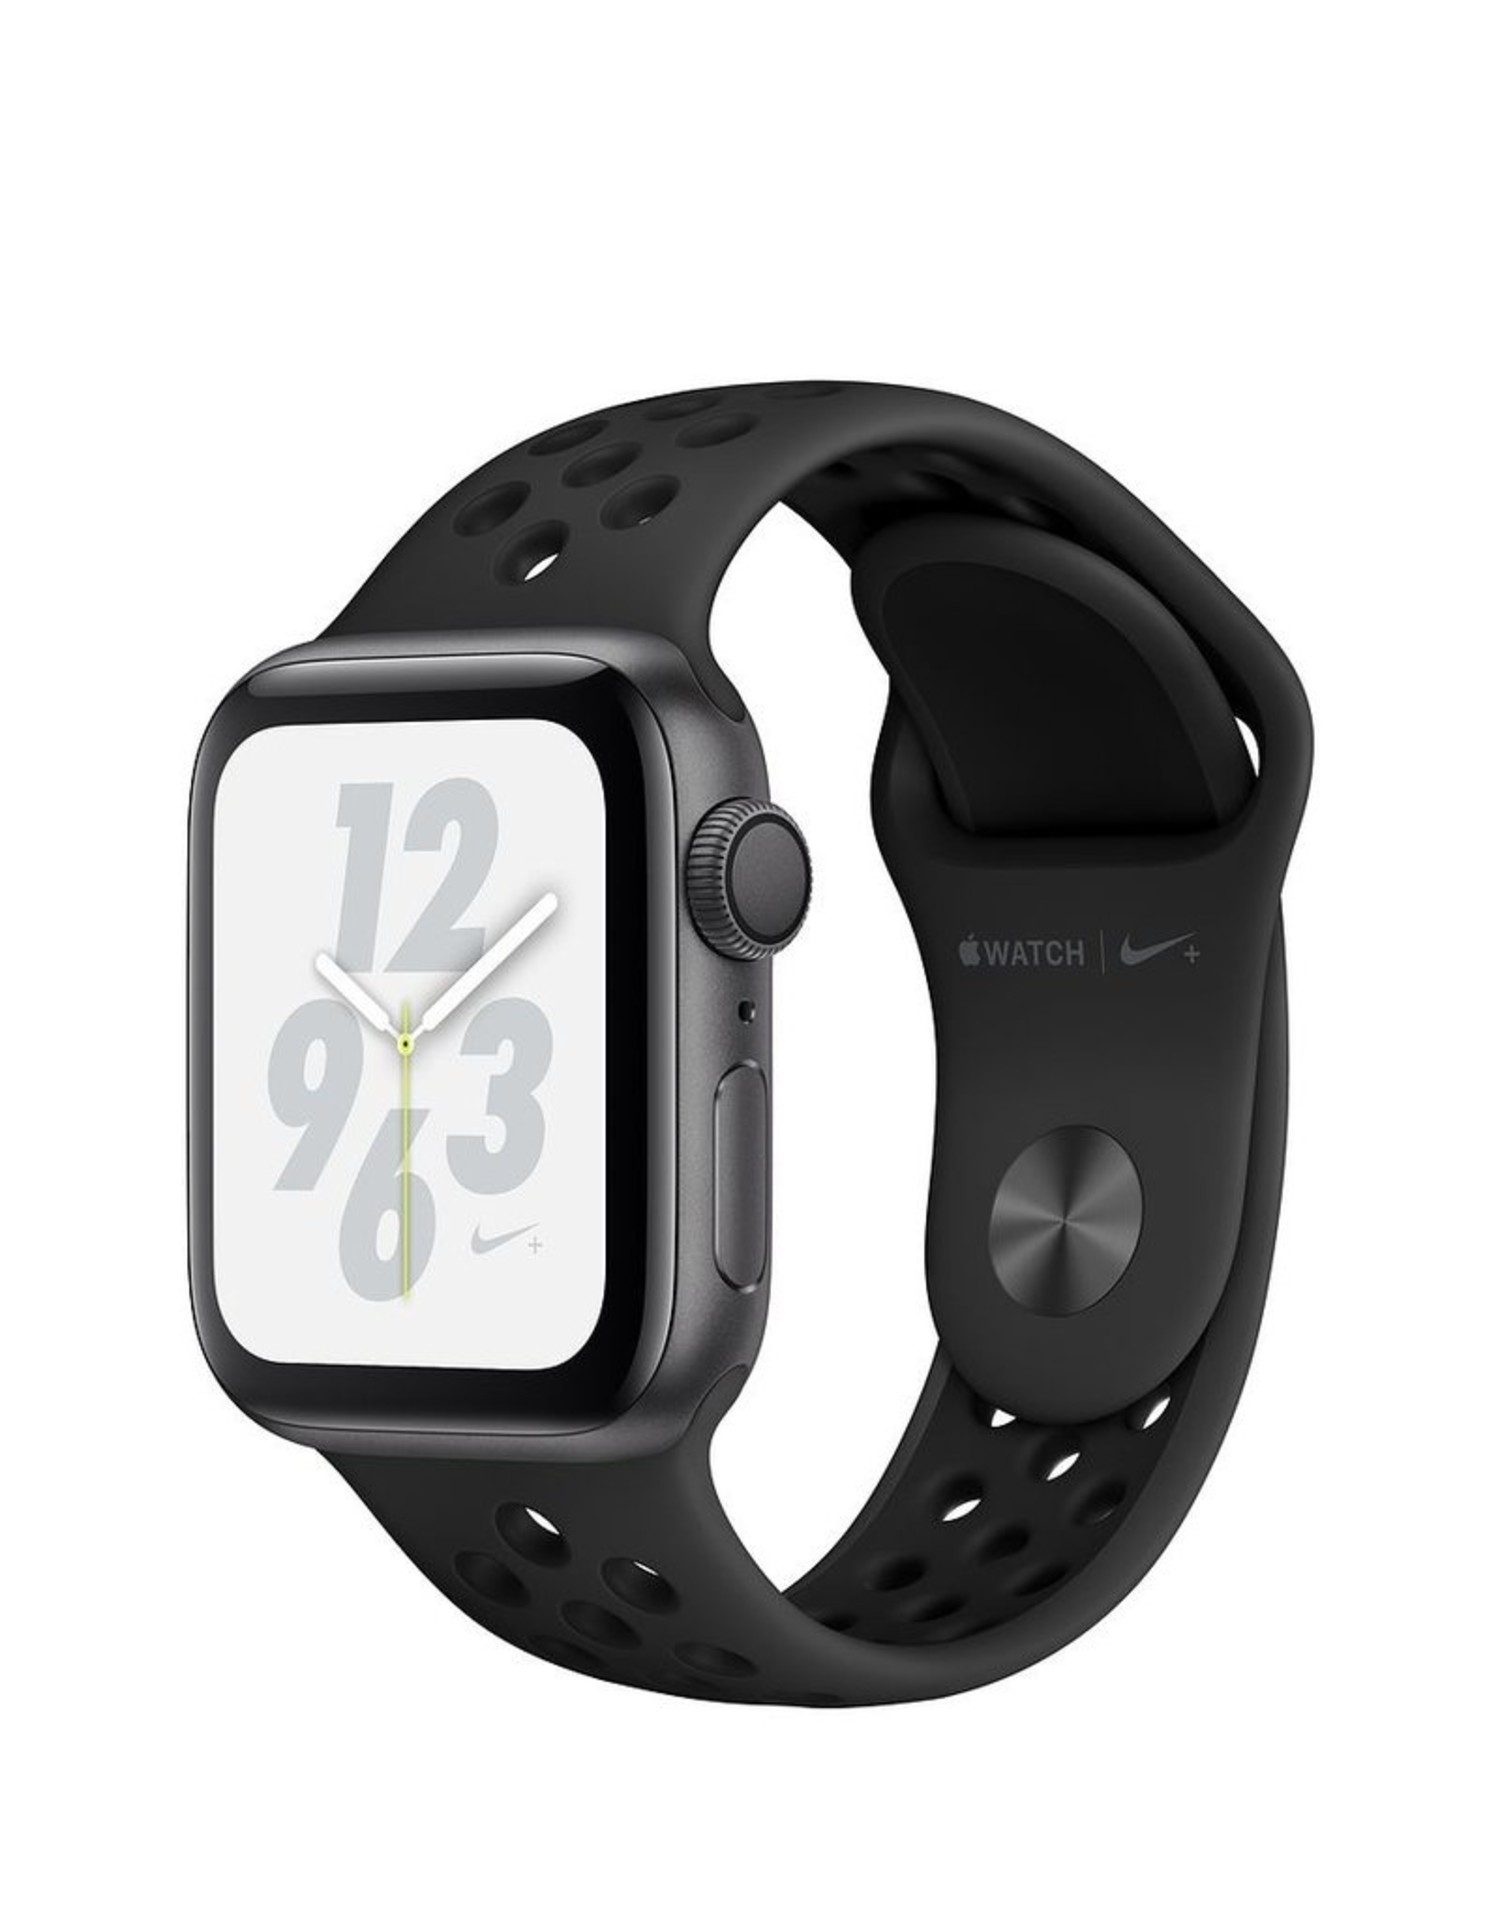 Limpia el cuarto Camino sombra  Apple Watch Nike+ Series 4 GPS + Cellular, 40mm Space Gray Aluminum Case  with Anthracite/Black Nike Sport Band - kite+key, Rutgers Tech Store